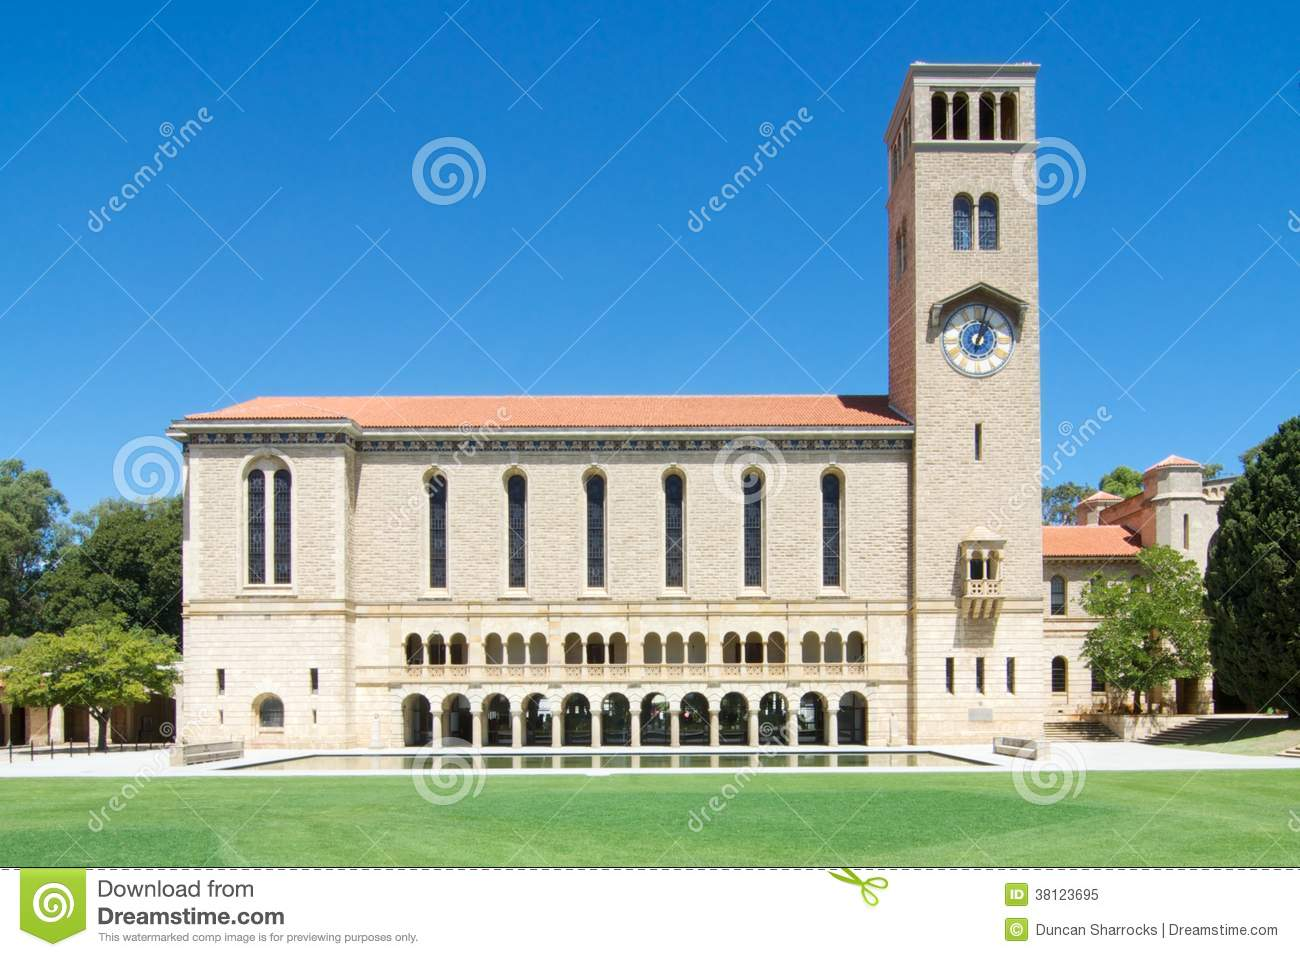 Floor Plans Perth Winthrop Hall And Clock Tower University Of Western